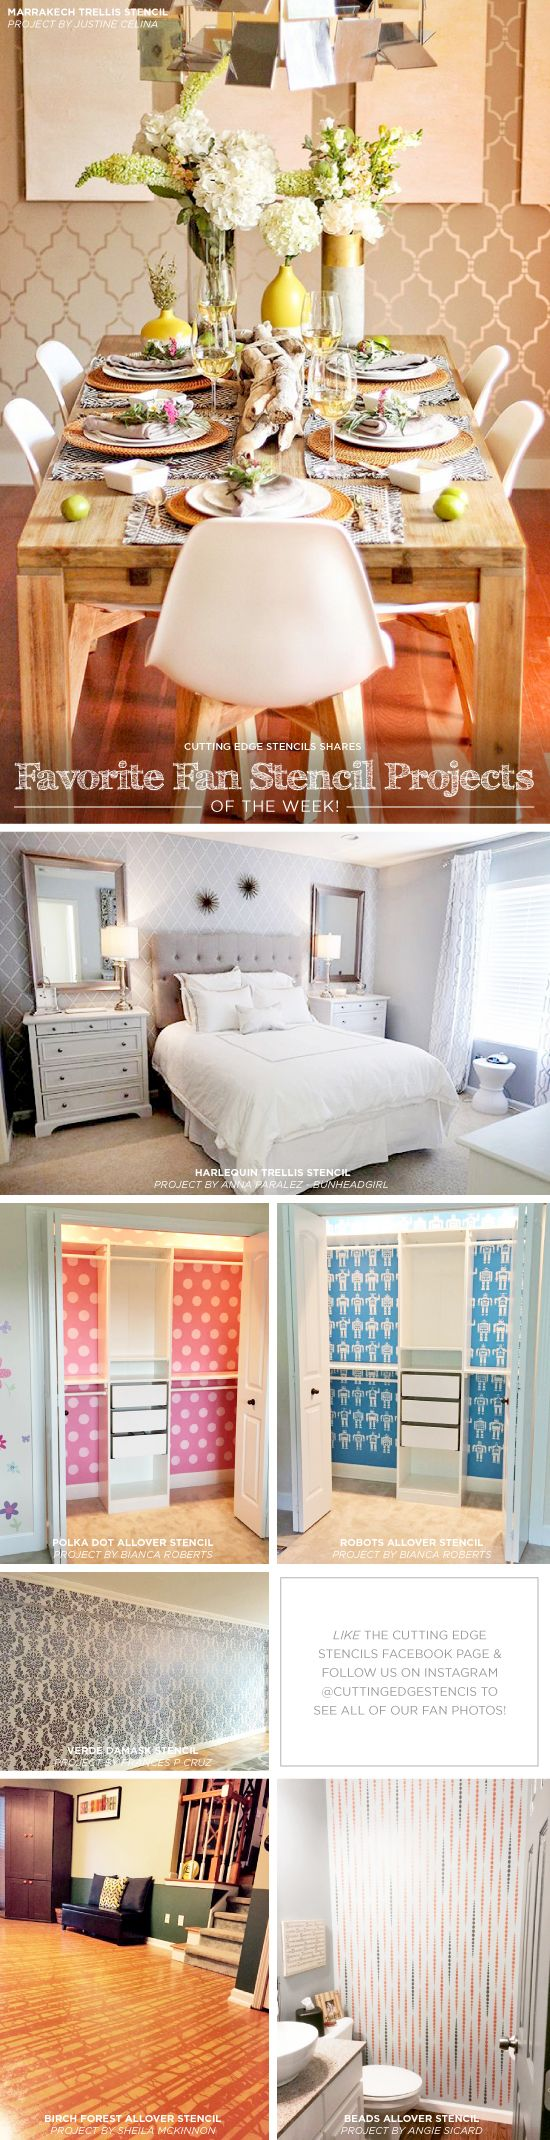 Cutting Edge Stencils shares DIY stenciled room ideas and accent wall projects.  http://www.cuttingedgestencils.com/wall-stencils-stencil-designs.html?utm_source=JCG&utm_medium=Pinterest%20Comment&utm_campaign=New%20Stencil%20Designs